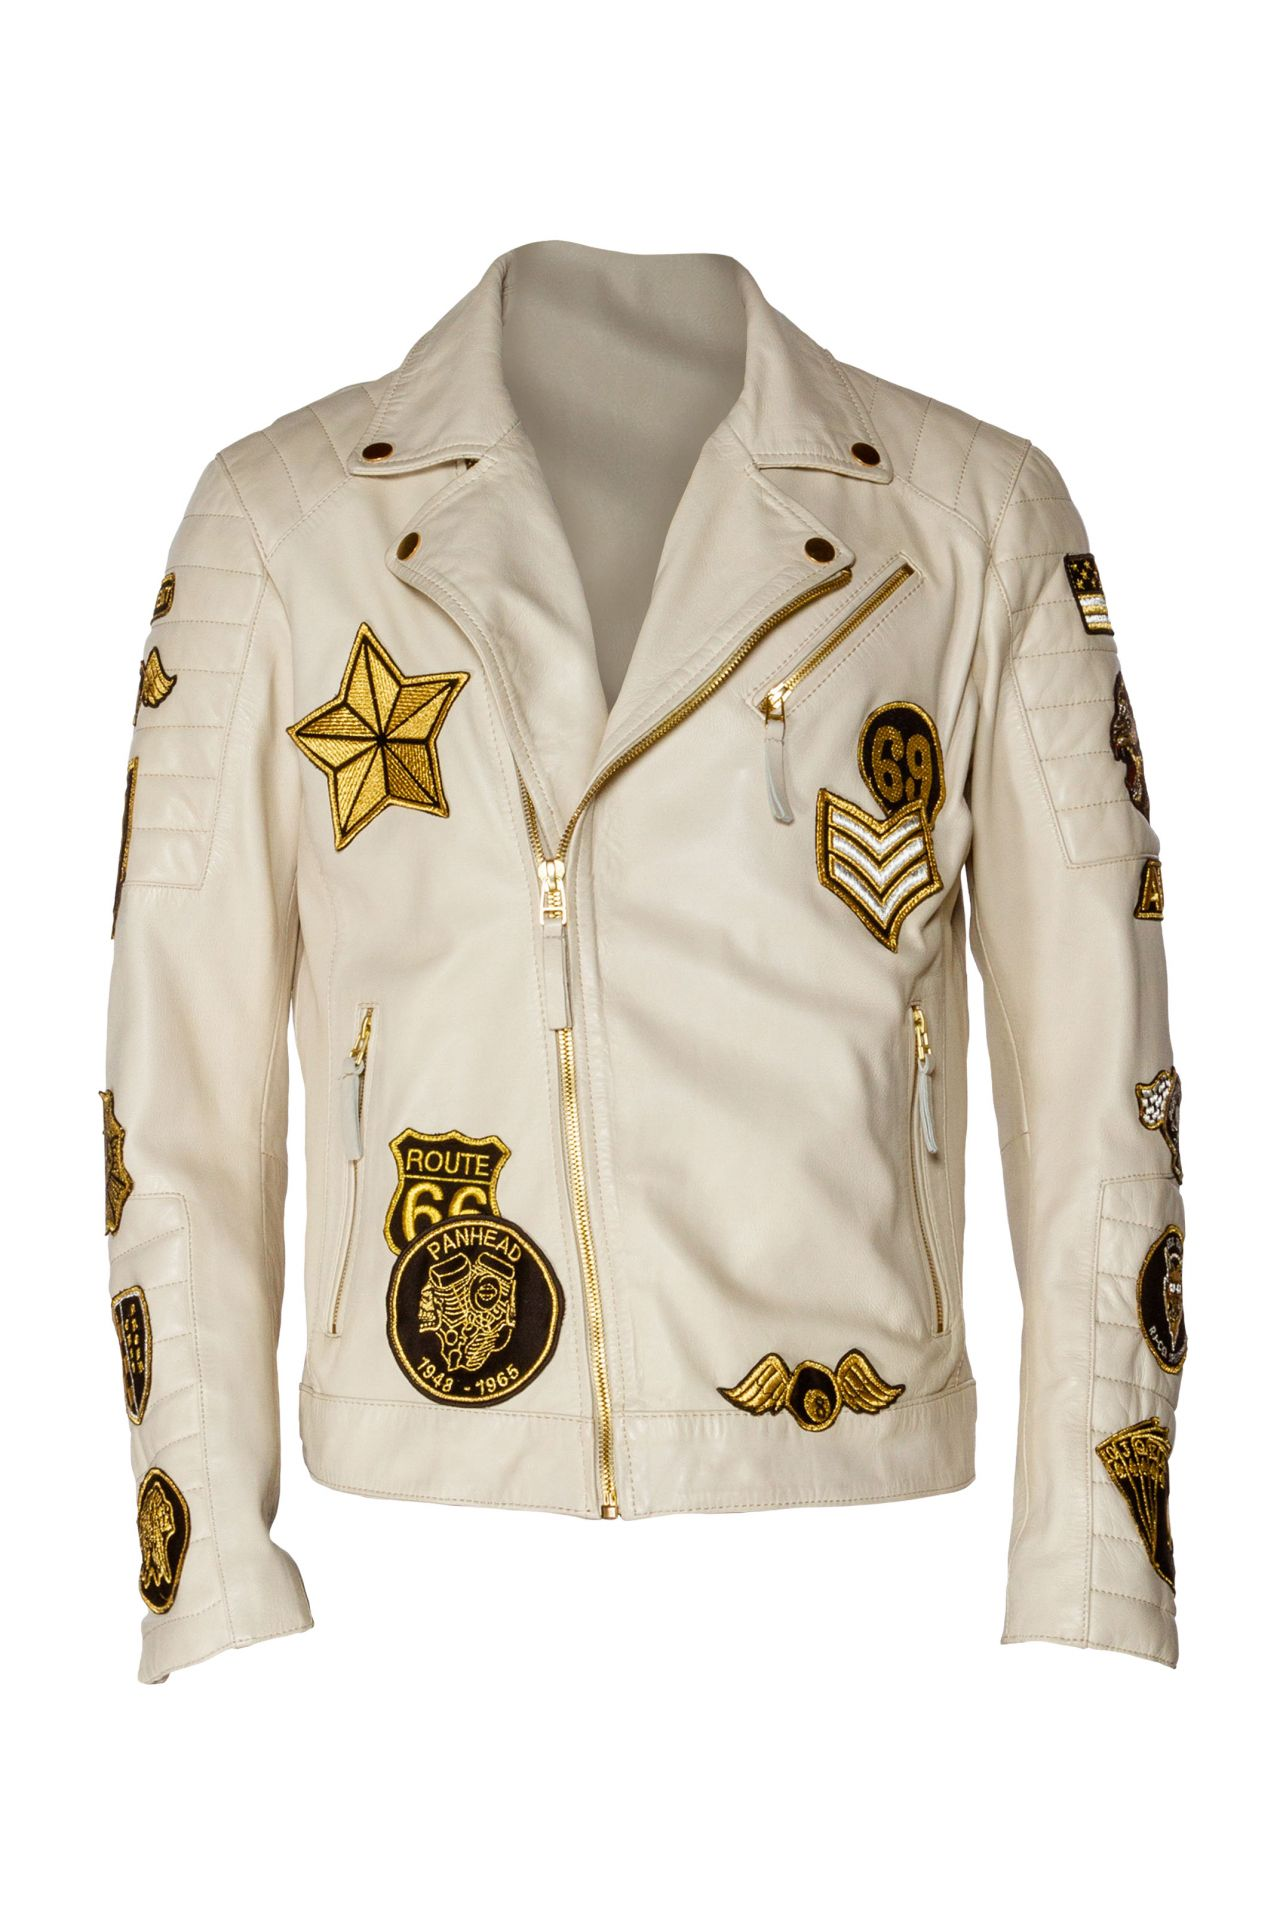 WHITE LEATHER BIKER JACKET WITH PATCHWORK